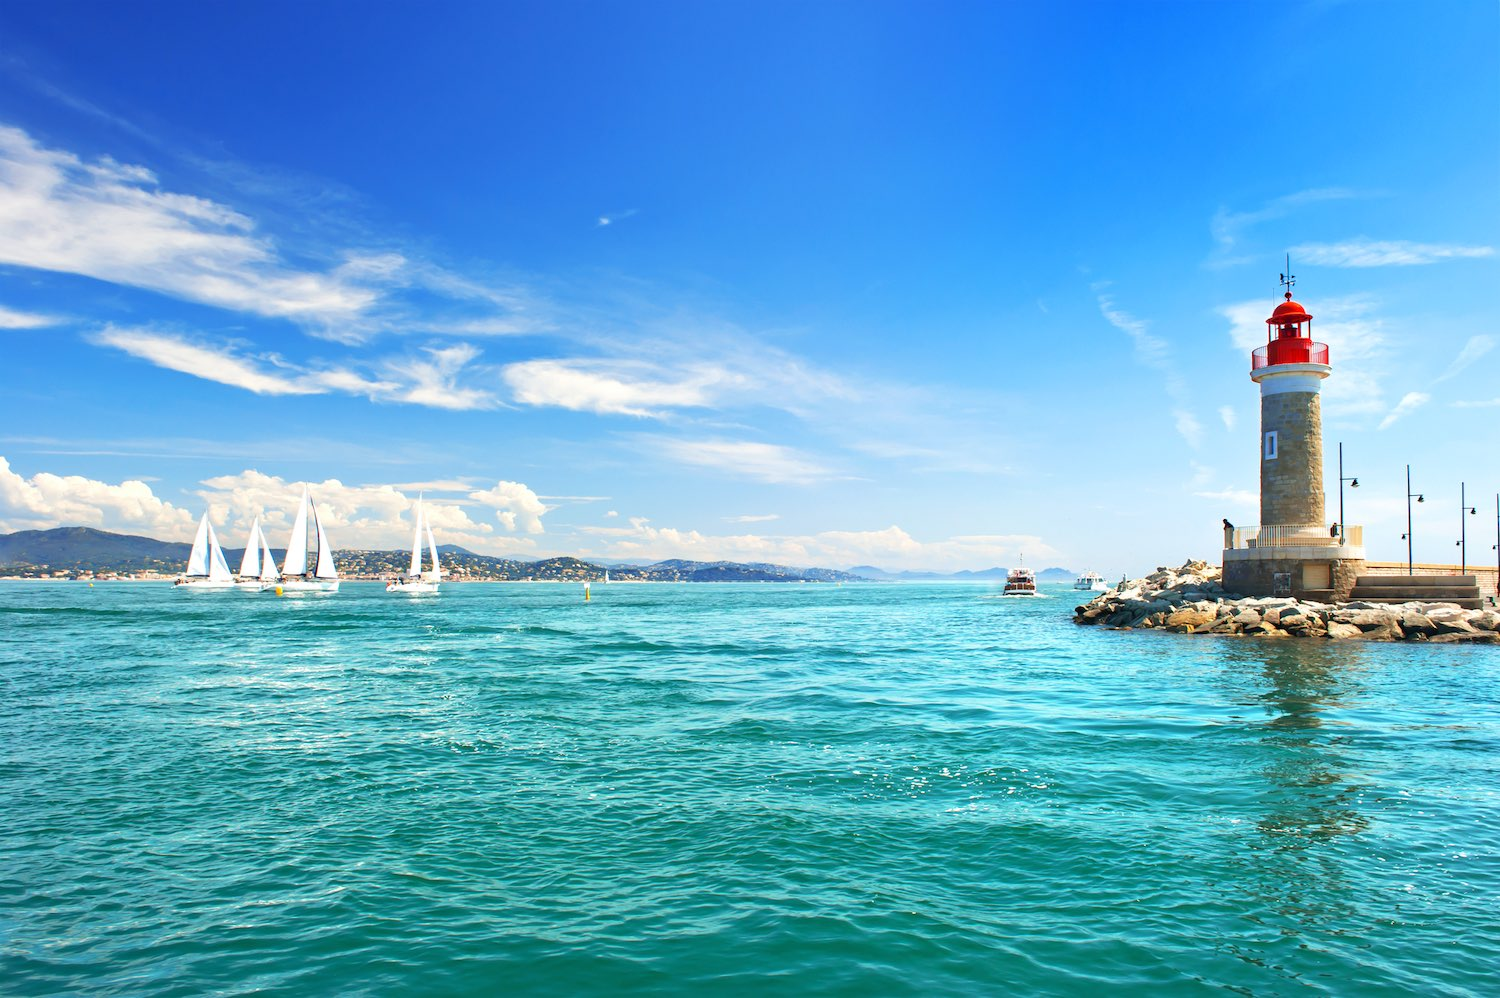 St. Tropez- Things to do in the French Riviera